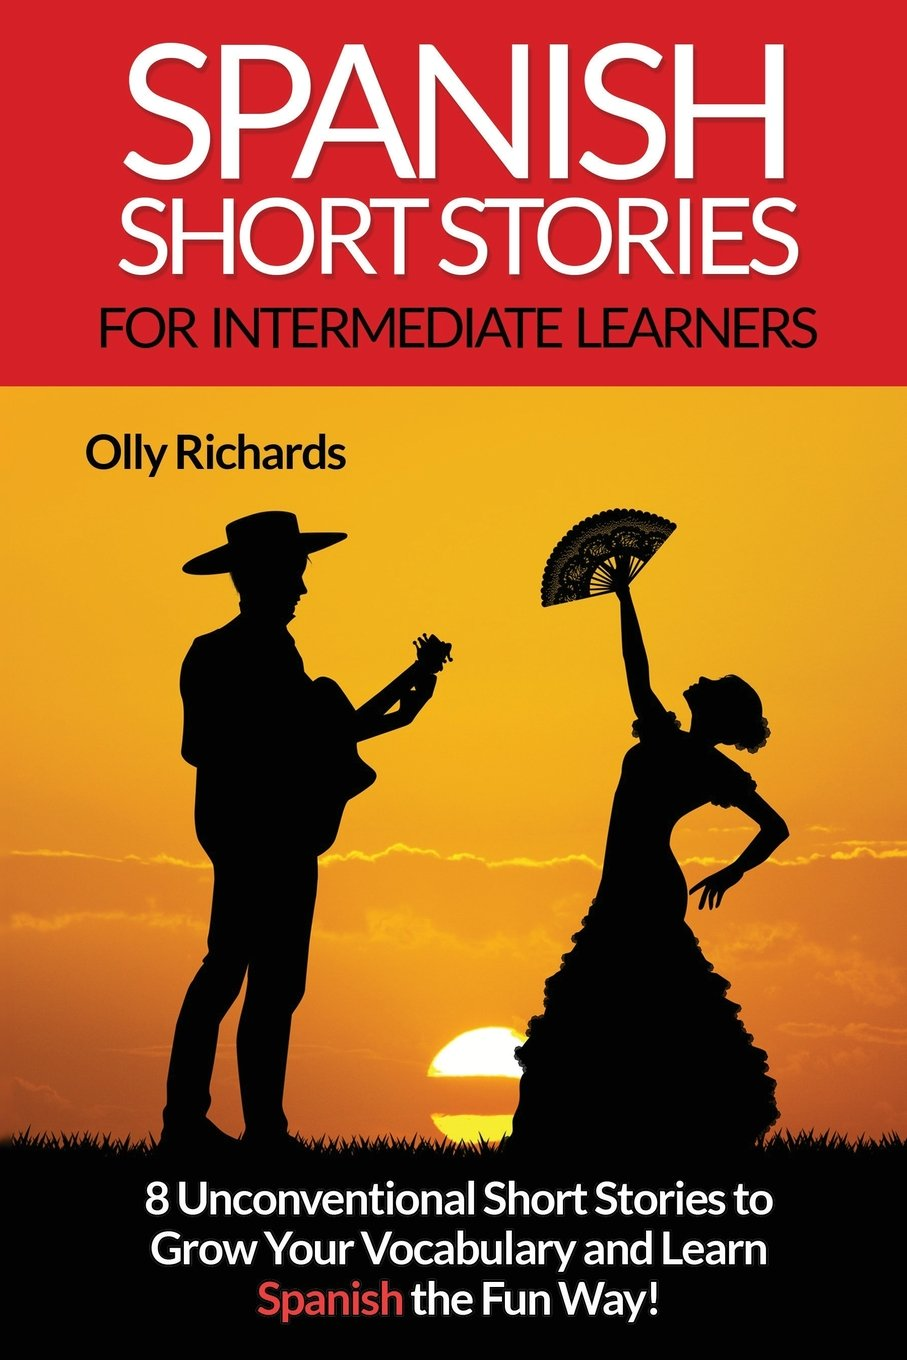 Spanish Short Stories For Intermediate Learners: Eight Unconventional Short Stories to Grow Your Vocabulary and Learn Spanish the Fun Way! Tapa blanda – 14 nov 2016 Olly Richards Createspace Independent Pub 1540407357 Readers (Publications)